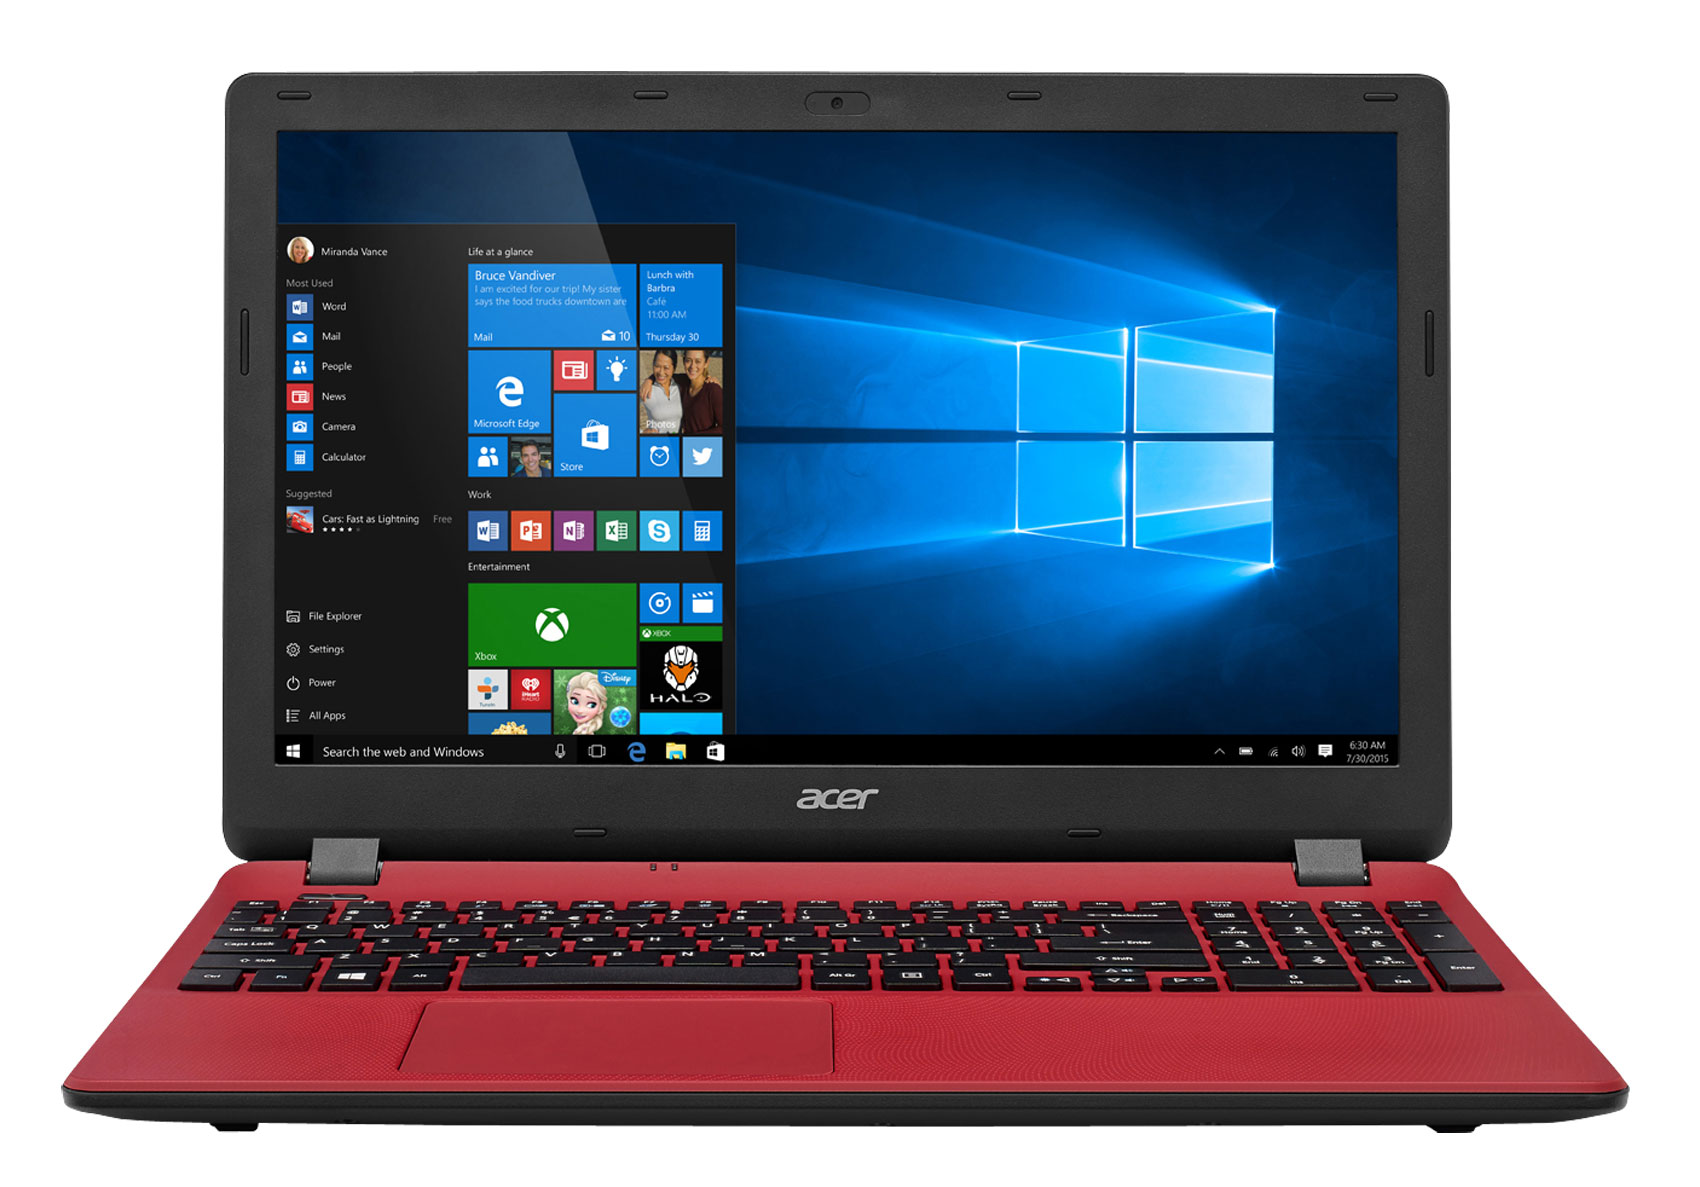 Acer Aspire ES 15 ES157134DU Intel Core i3 128GB SSD 6GB RAM 156 Notebook